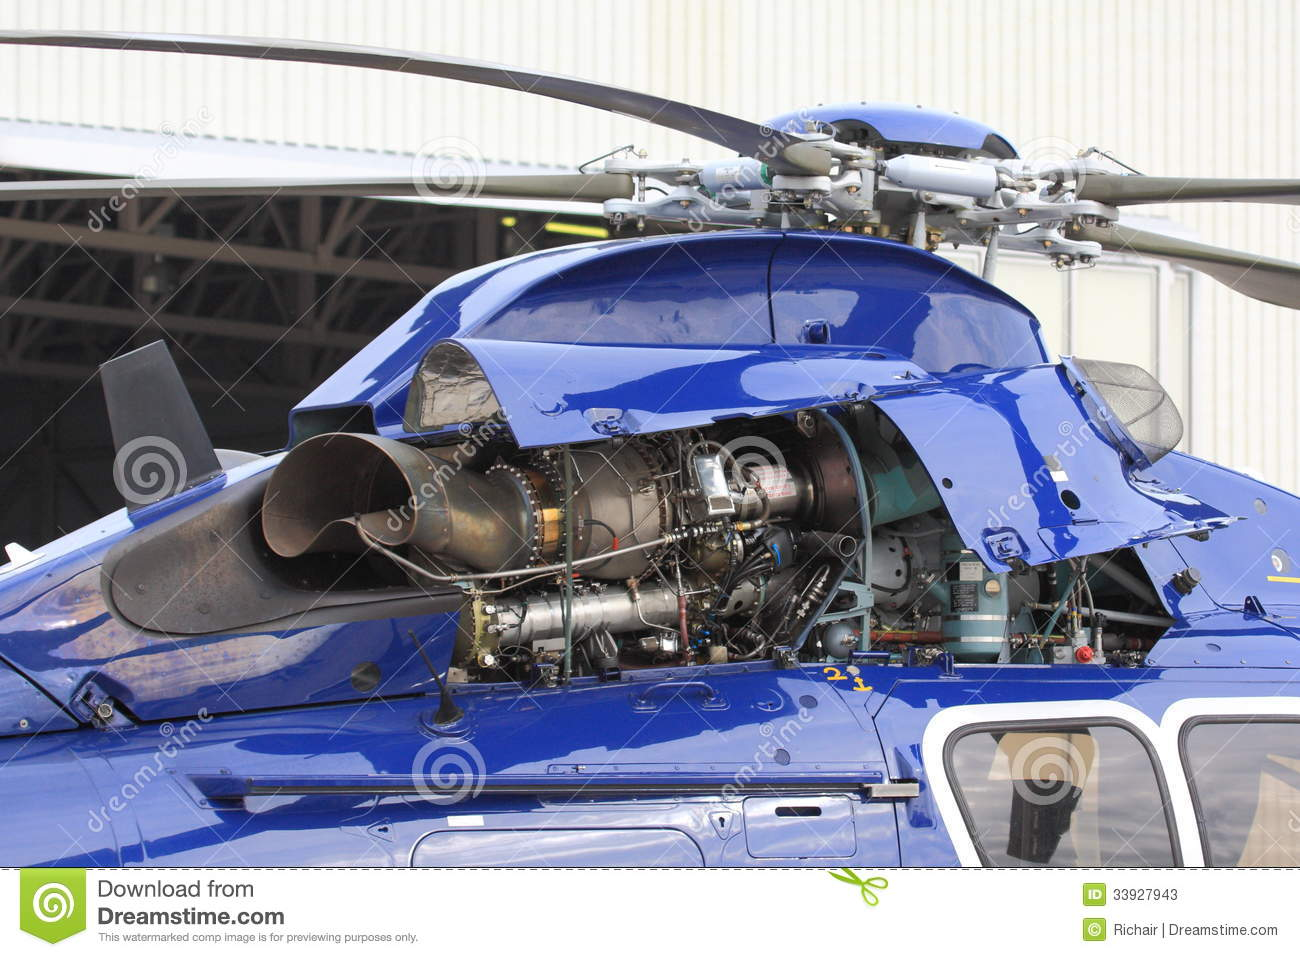 apache helicopter engine with Fotografie Stock Motore Turbina Dell Elicottero Image33927943 on Mi 28 as well Great Indian Tank Design Challenge in addition Croatia Tunisia First Receive Us Kiowa Warriors additionally File 20080406165033 V 22 Osprey refueling edit1 moreover File Boeing AH 64 Apache  7626953992.